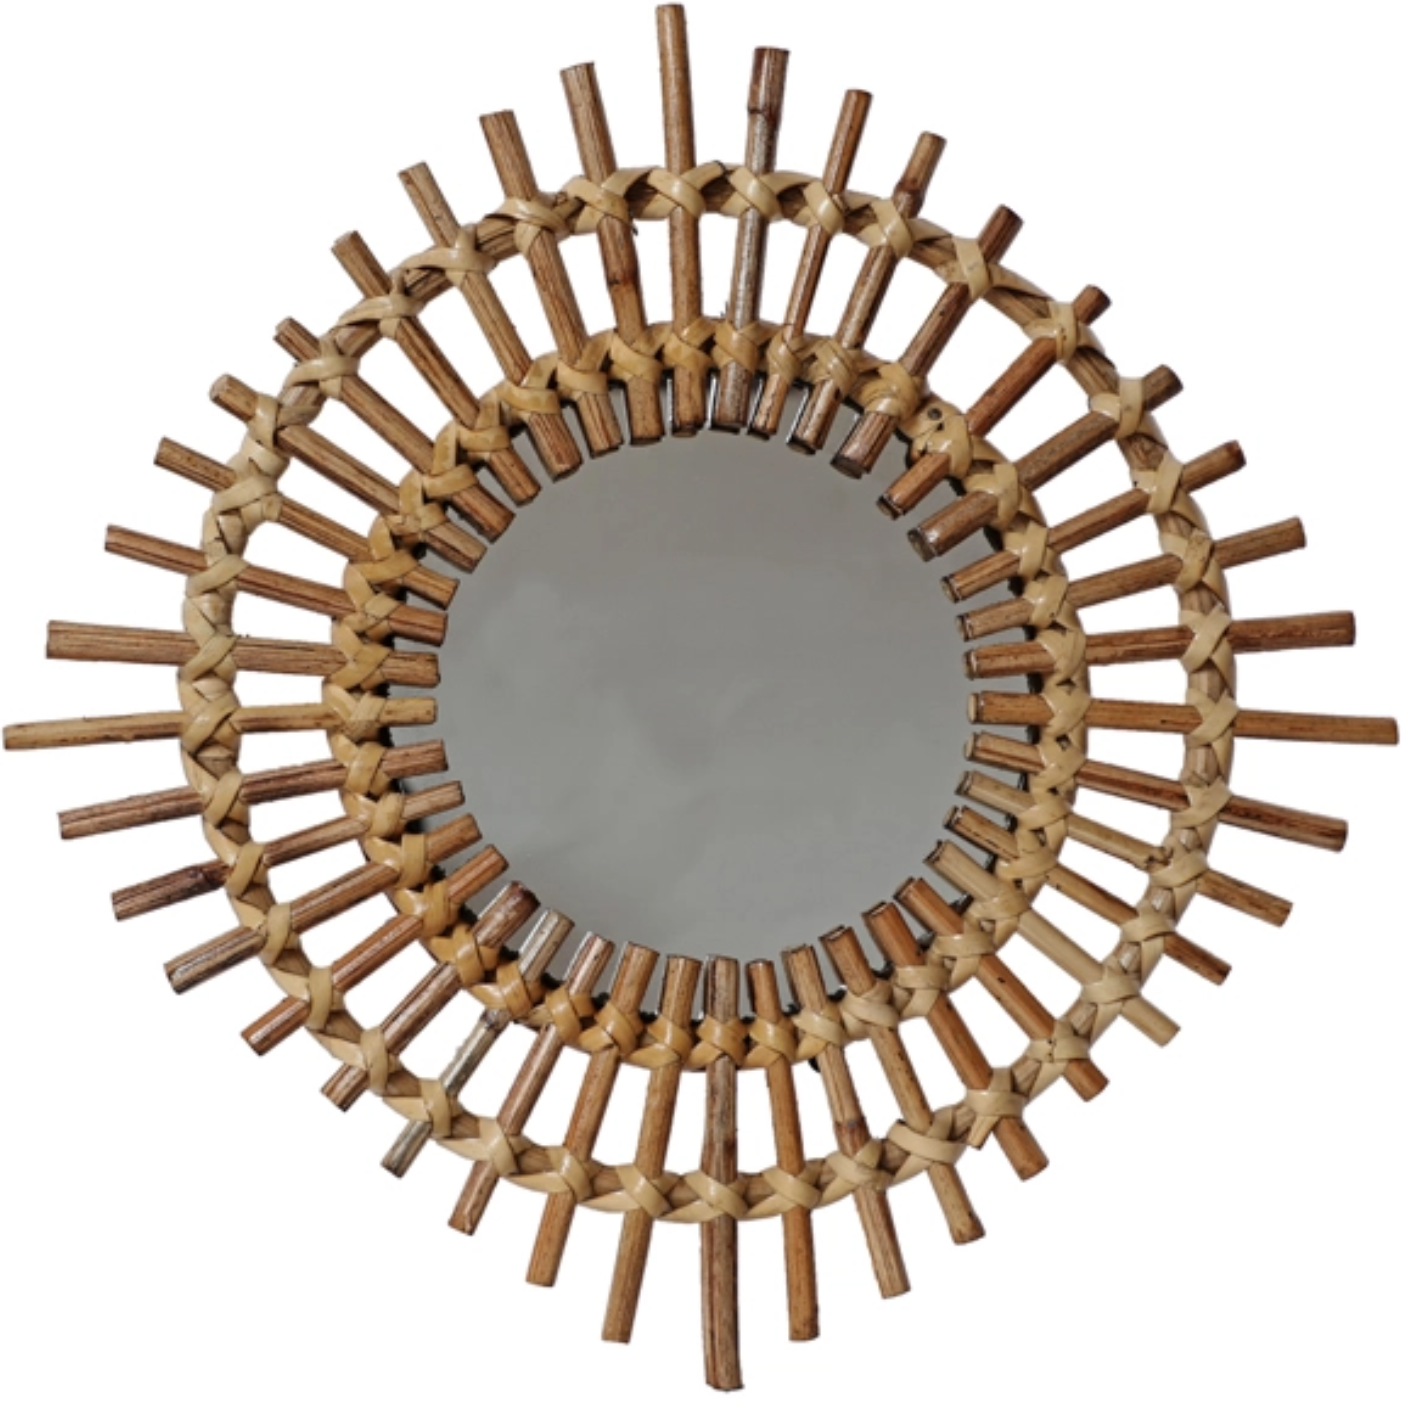 SUN SPIKED WALL MIRROR